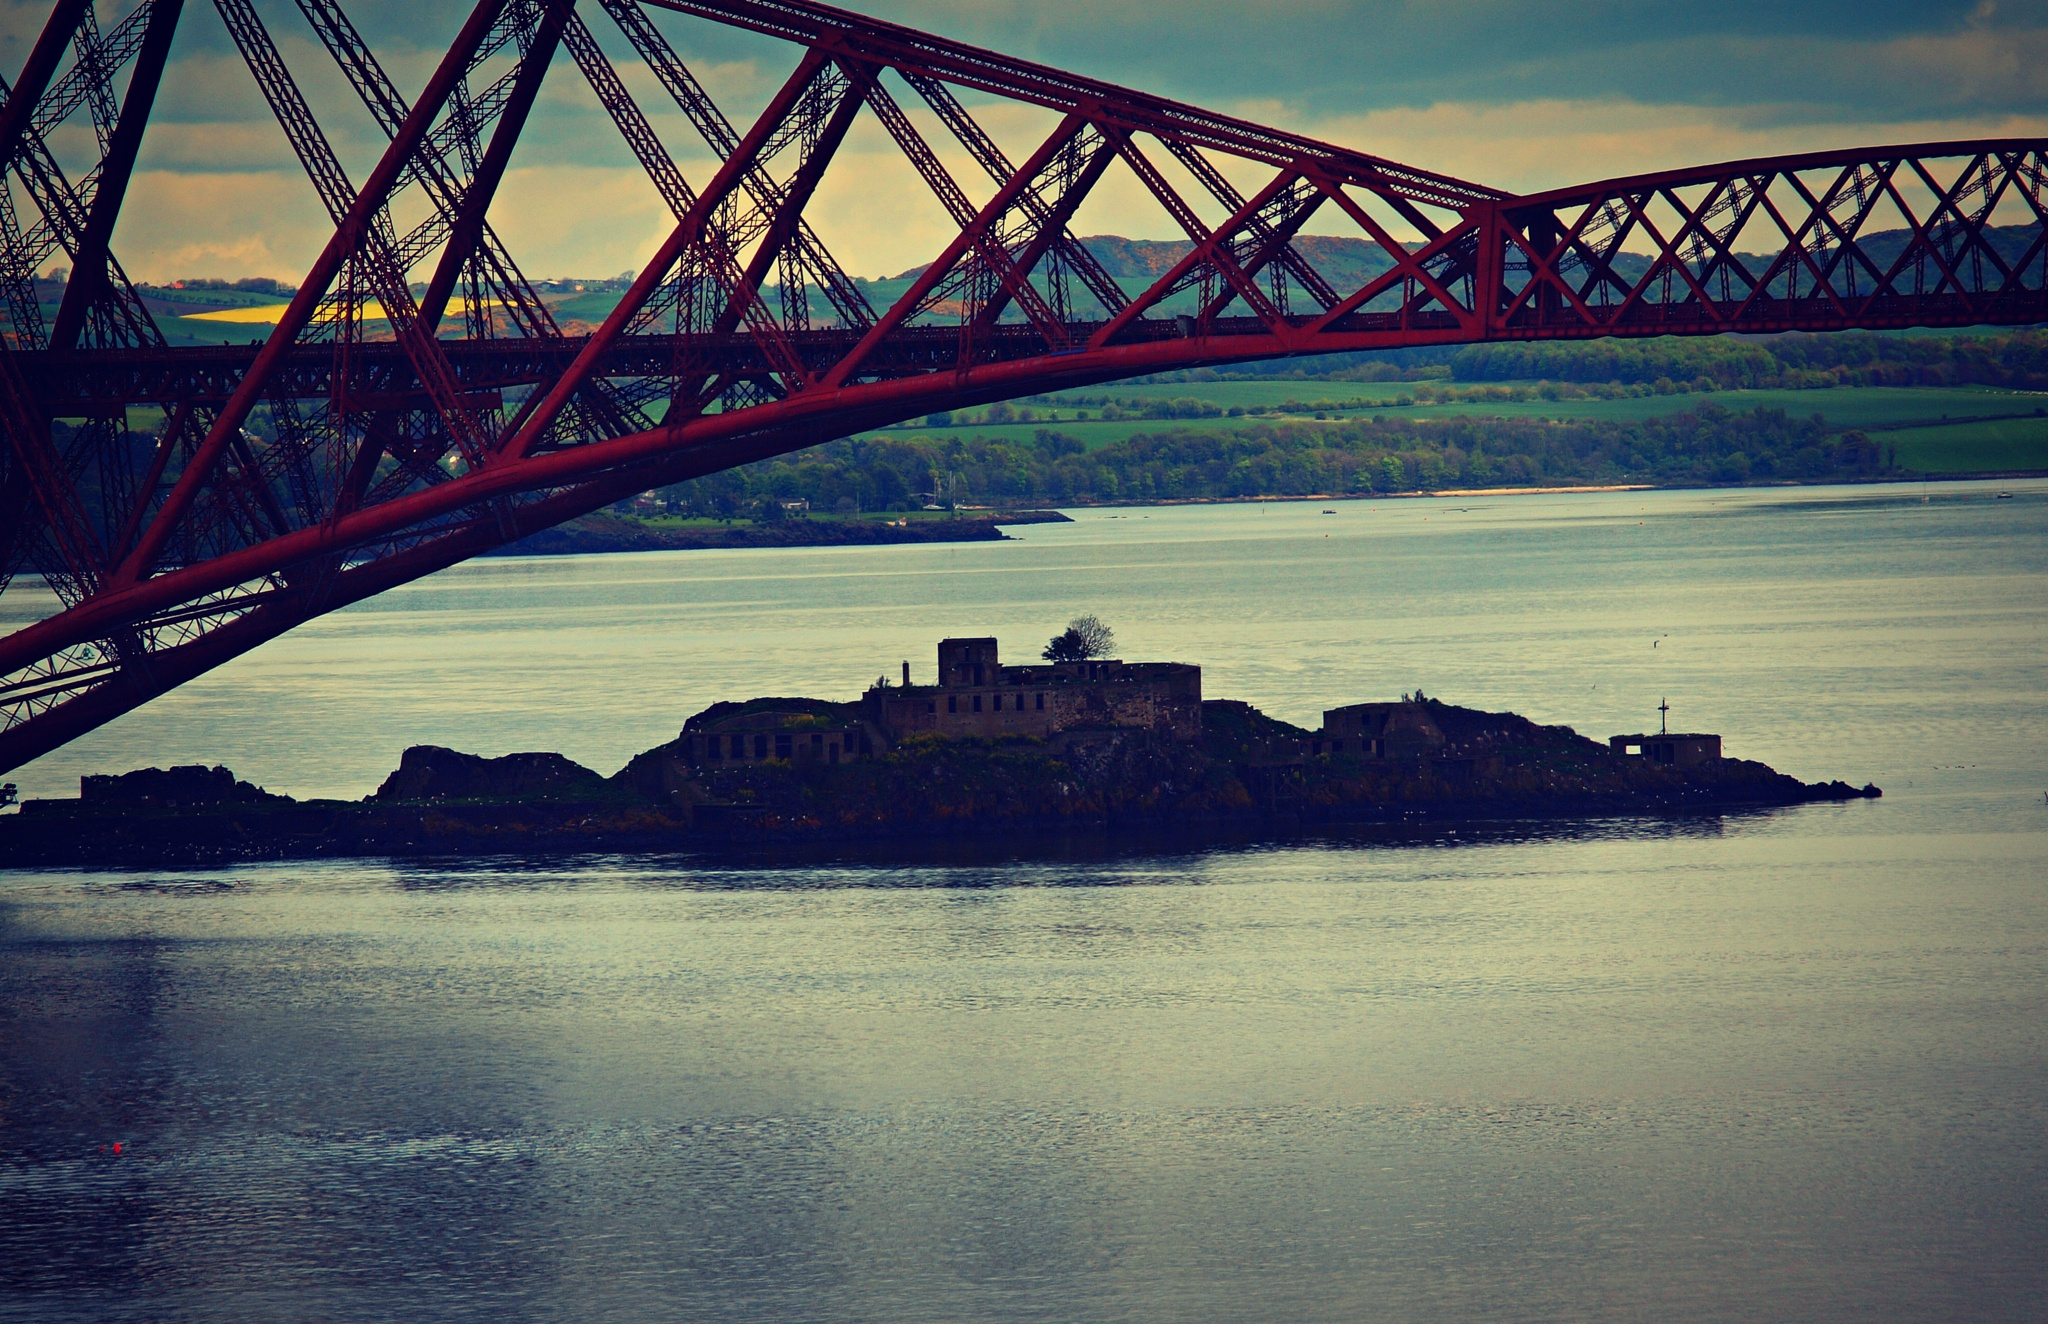 The forth by Tim Durrant